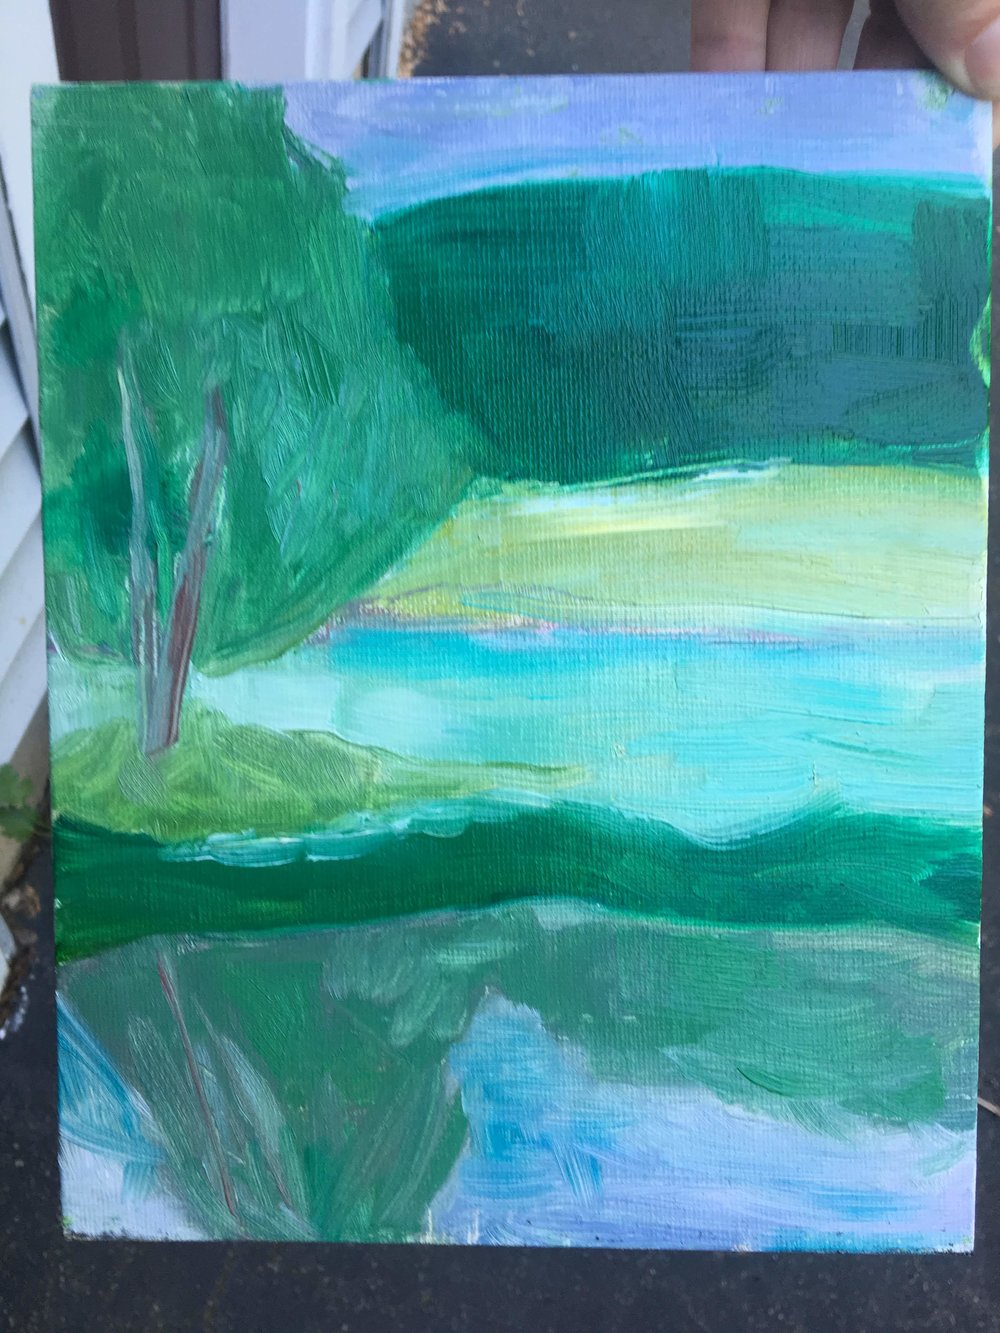 painting from third class ... no man-made focal point, and I found the reflection/water in the foreground very challenging!